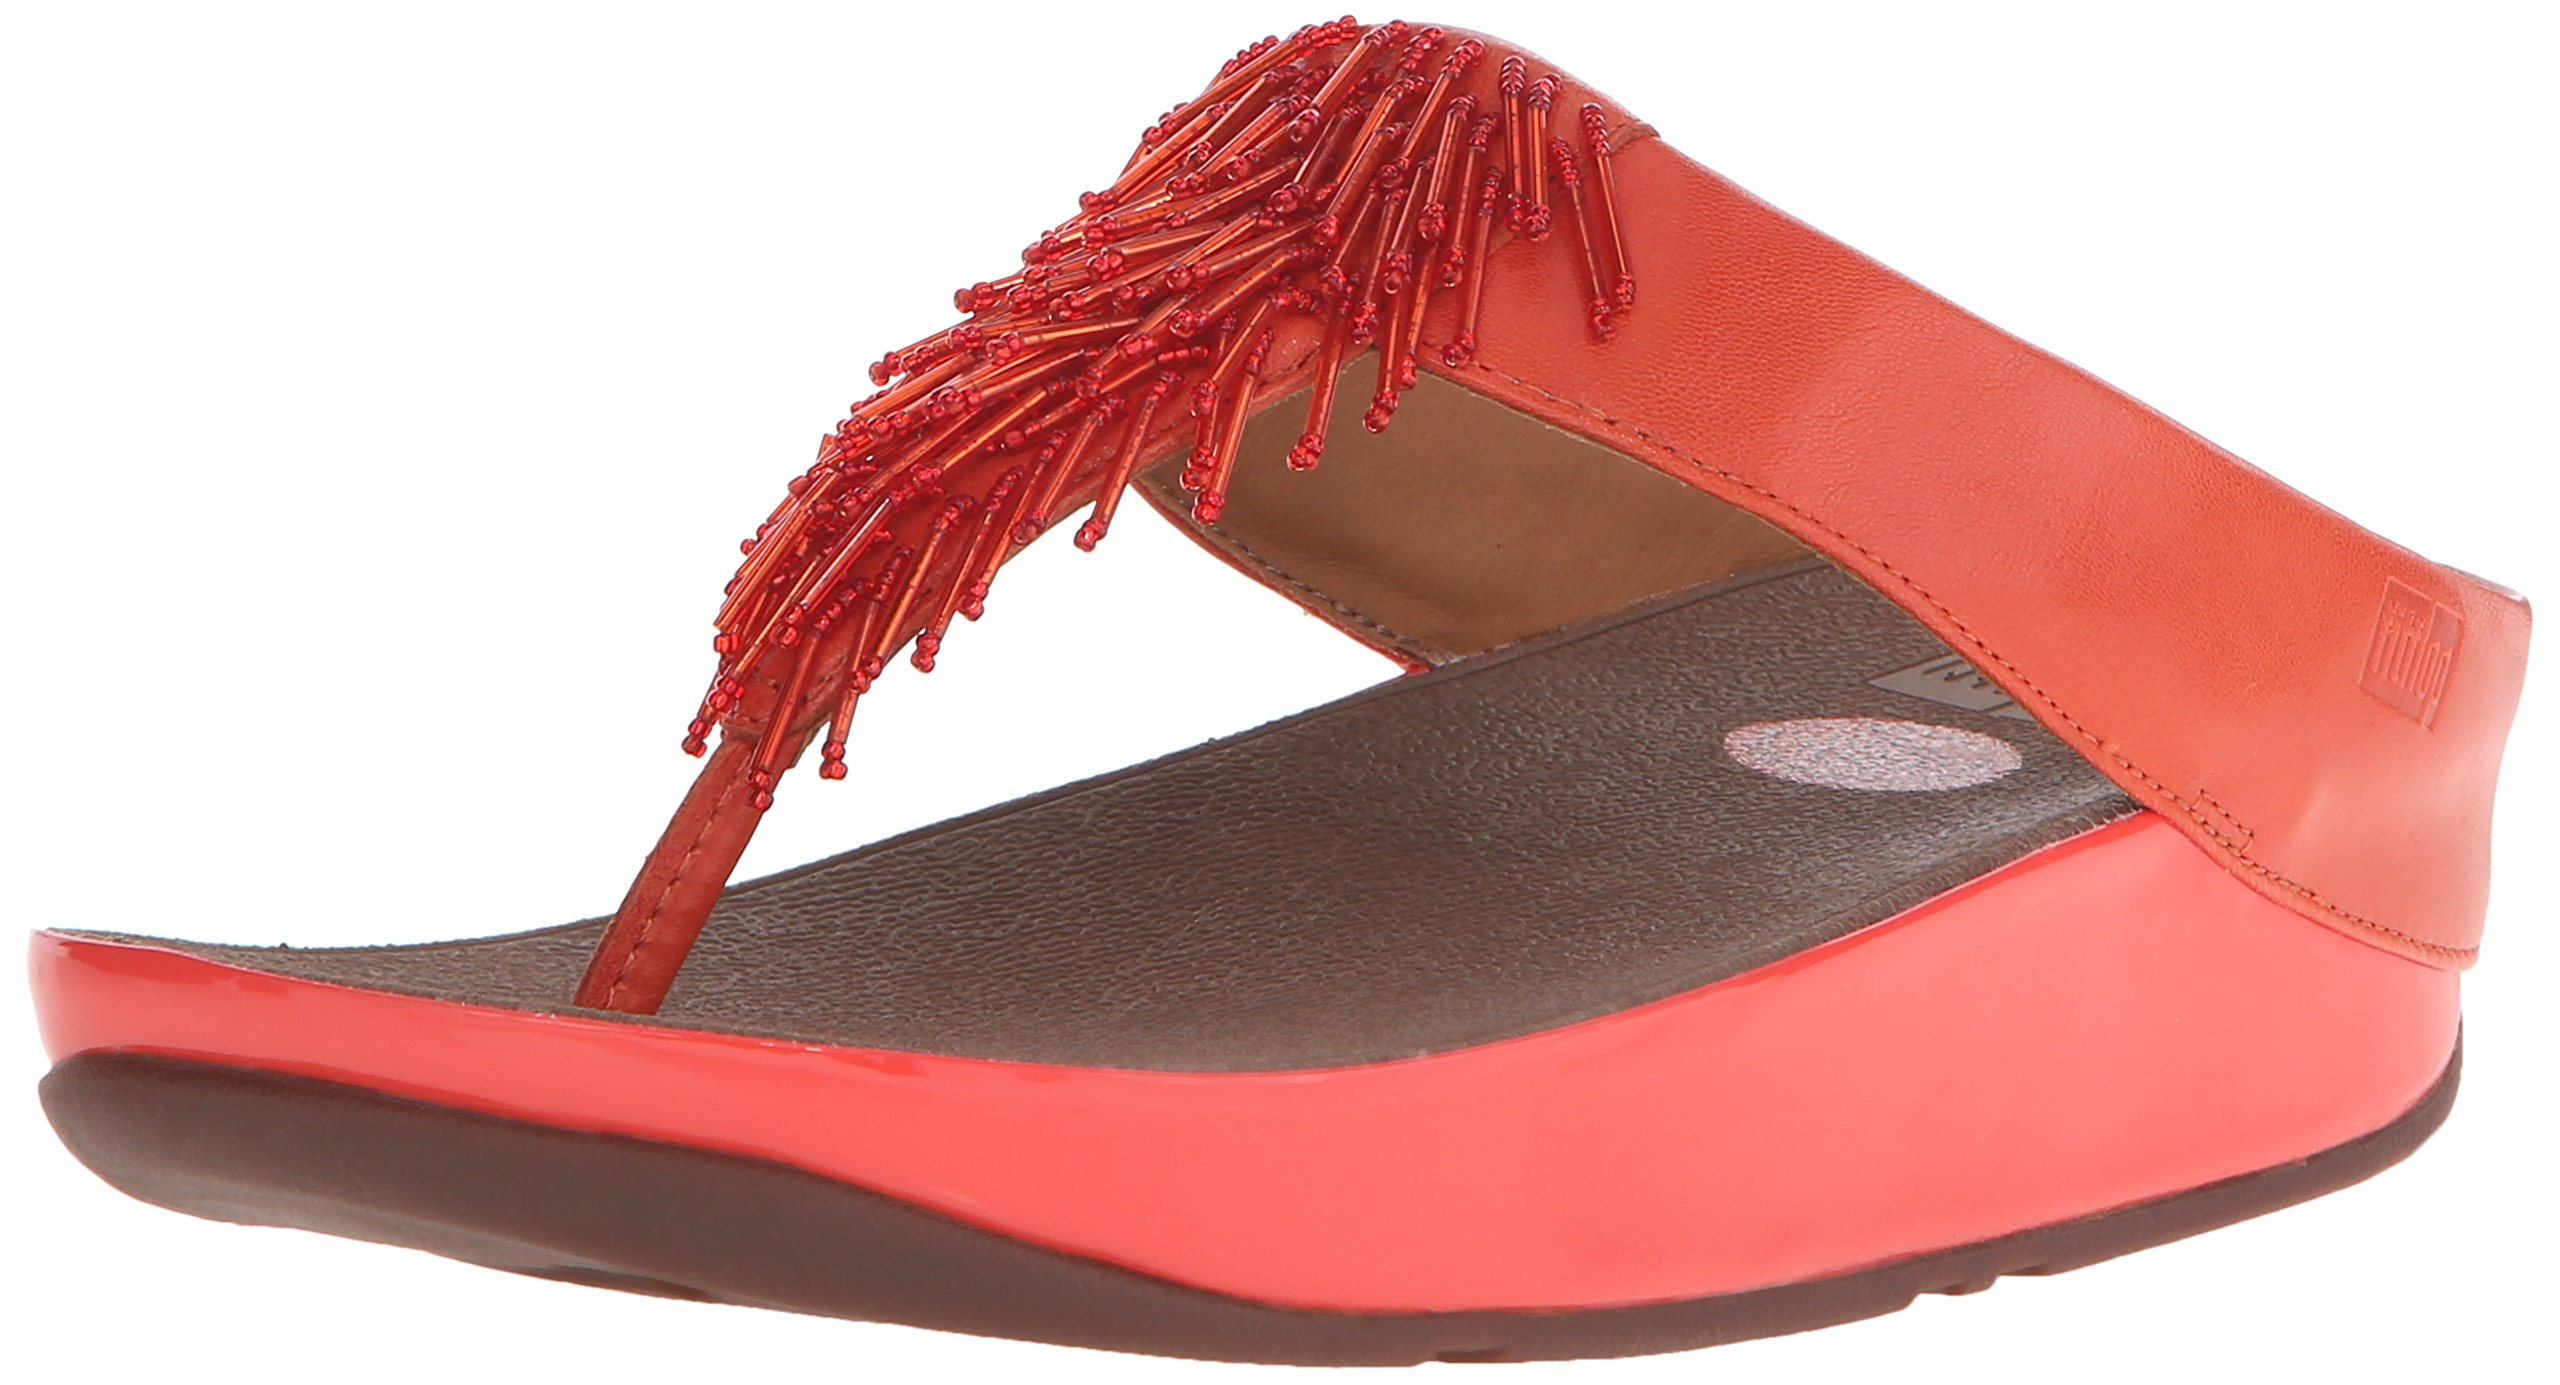 FitFlop Women's Cha Cha Flip Flop, Flame, 7 M US